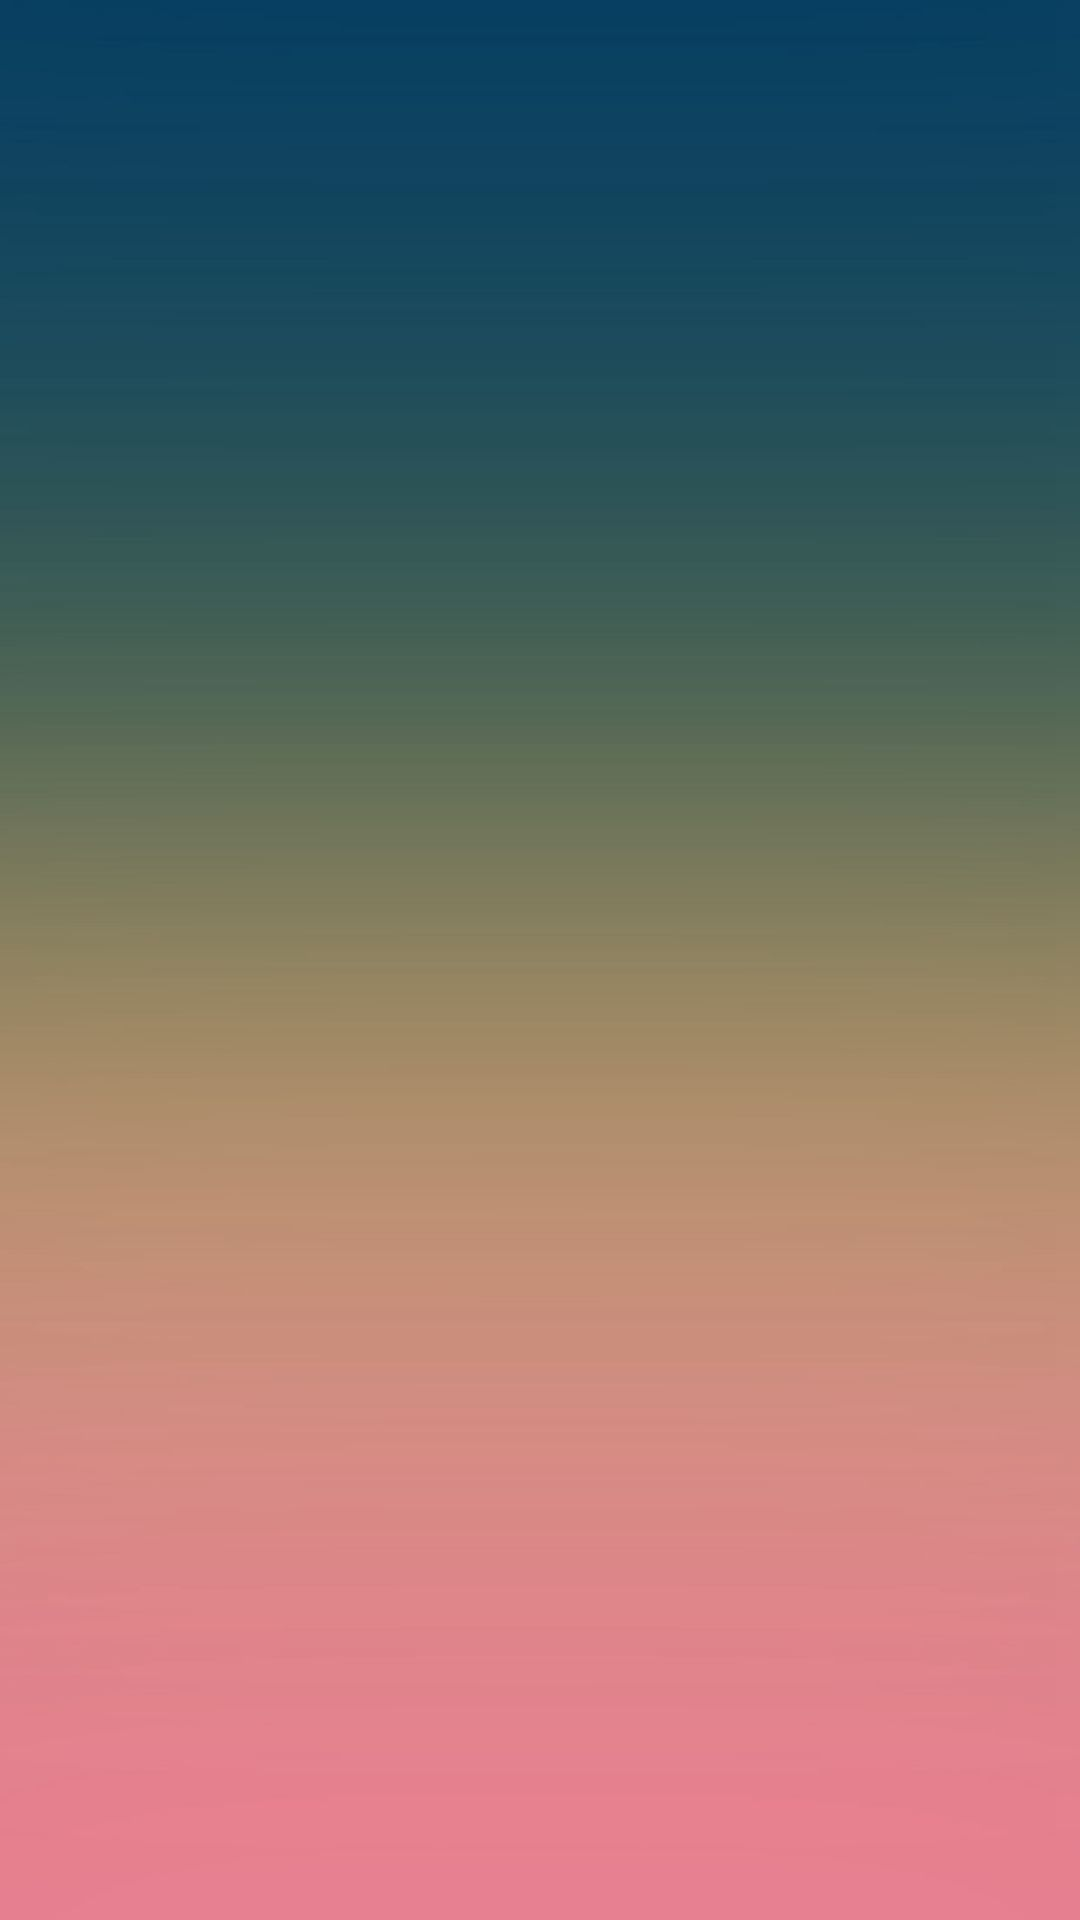 Wallpaper iphone color - Ugly People Color Gradation Blur Iphone 6 Wallpaper Iphone 6 Wallpapers Pinterest Wallpaper And People